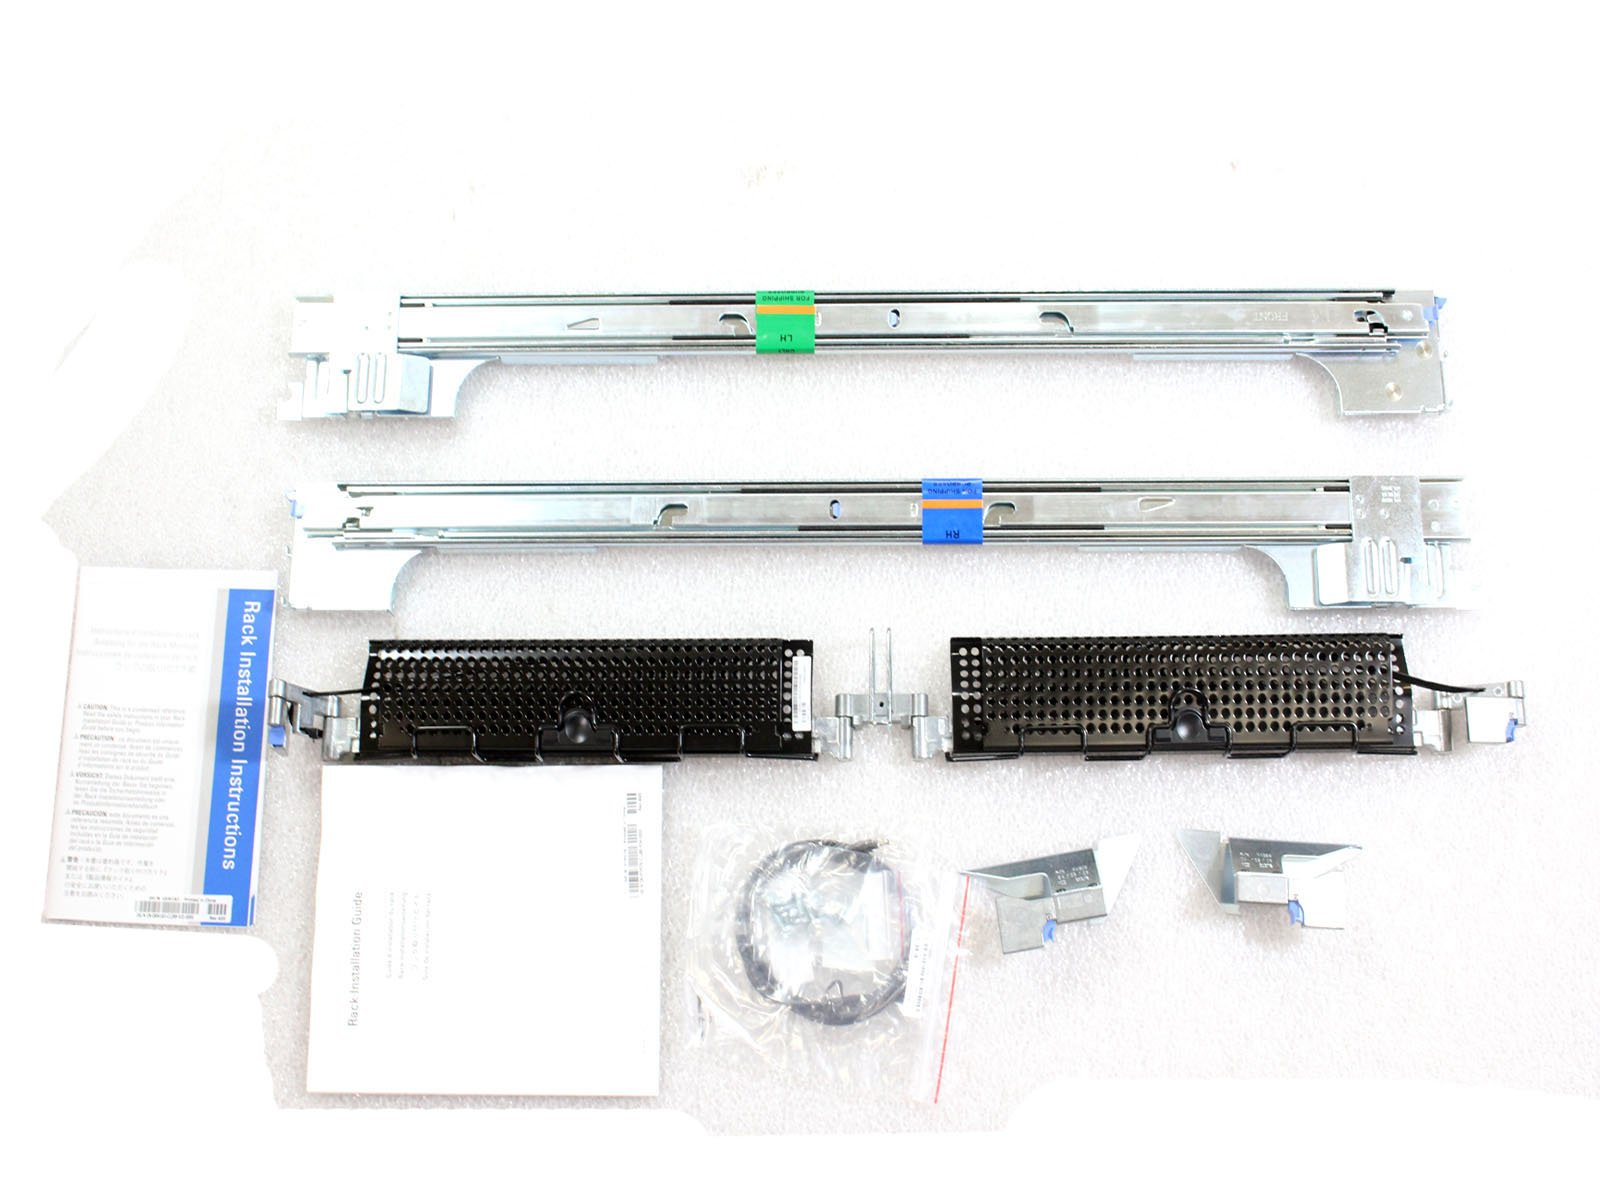 Dell FN360 Poweredge 2950 R805 Rapid Versa Rail Kit by Dell (Image #1)